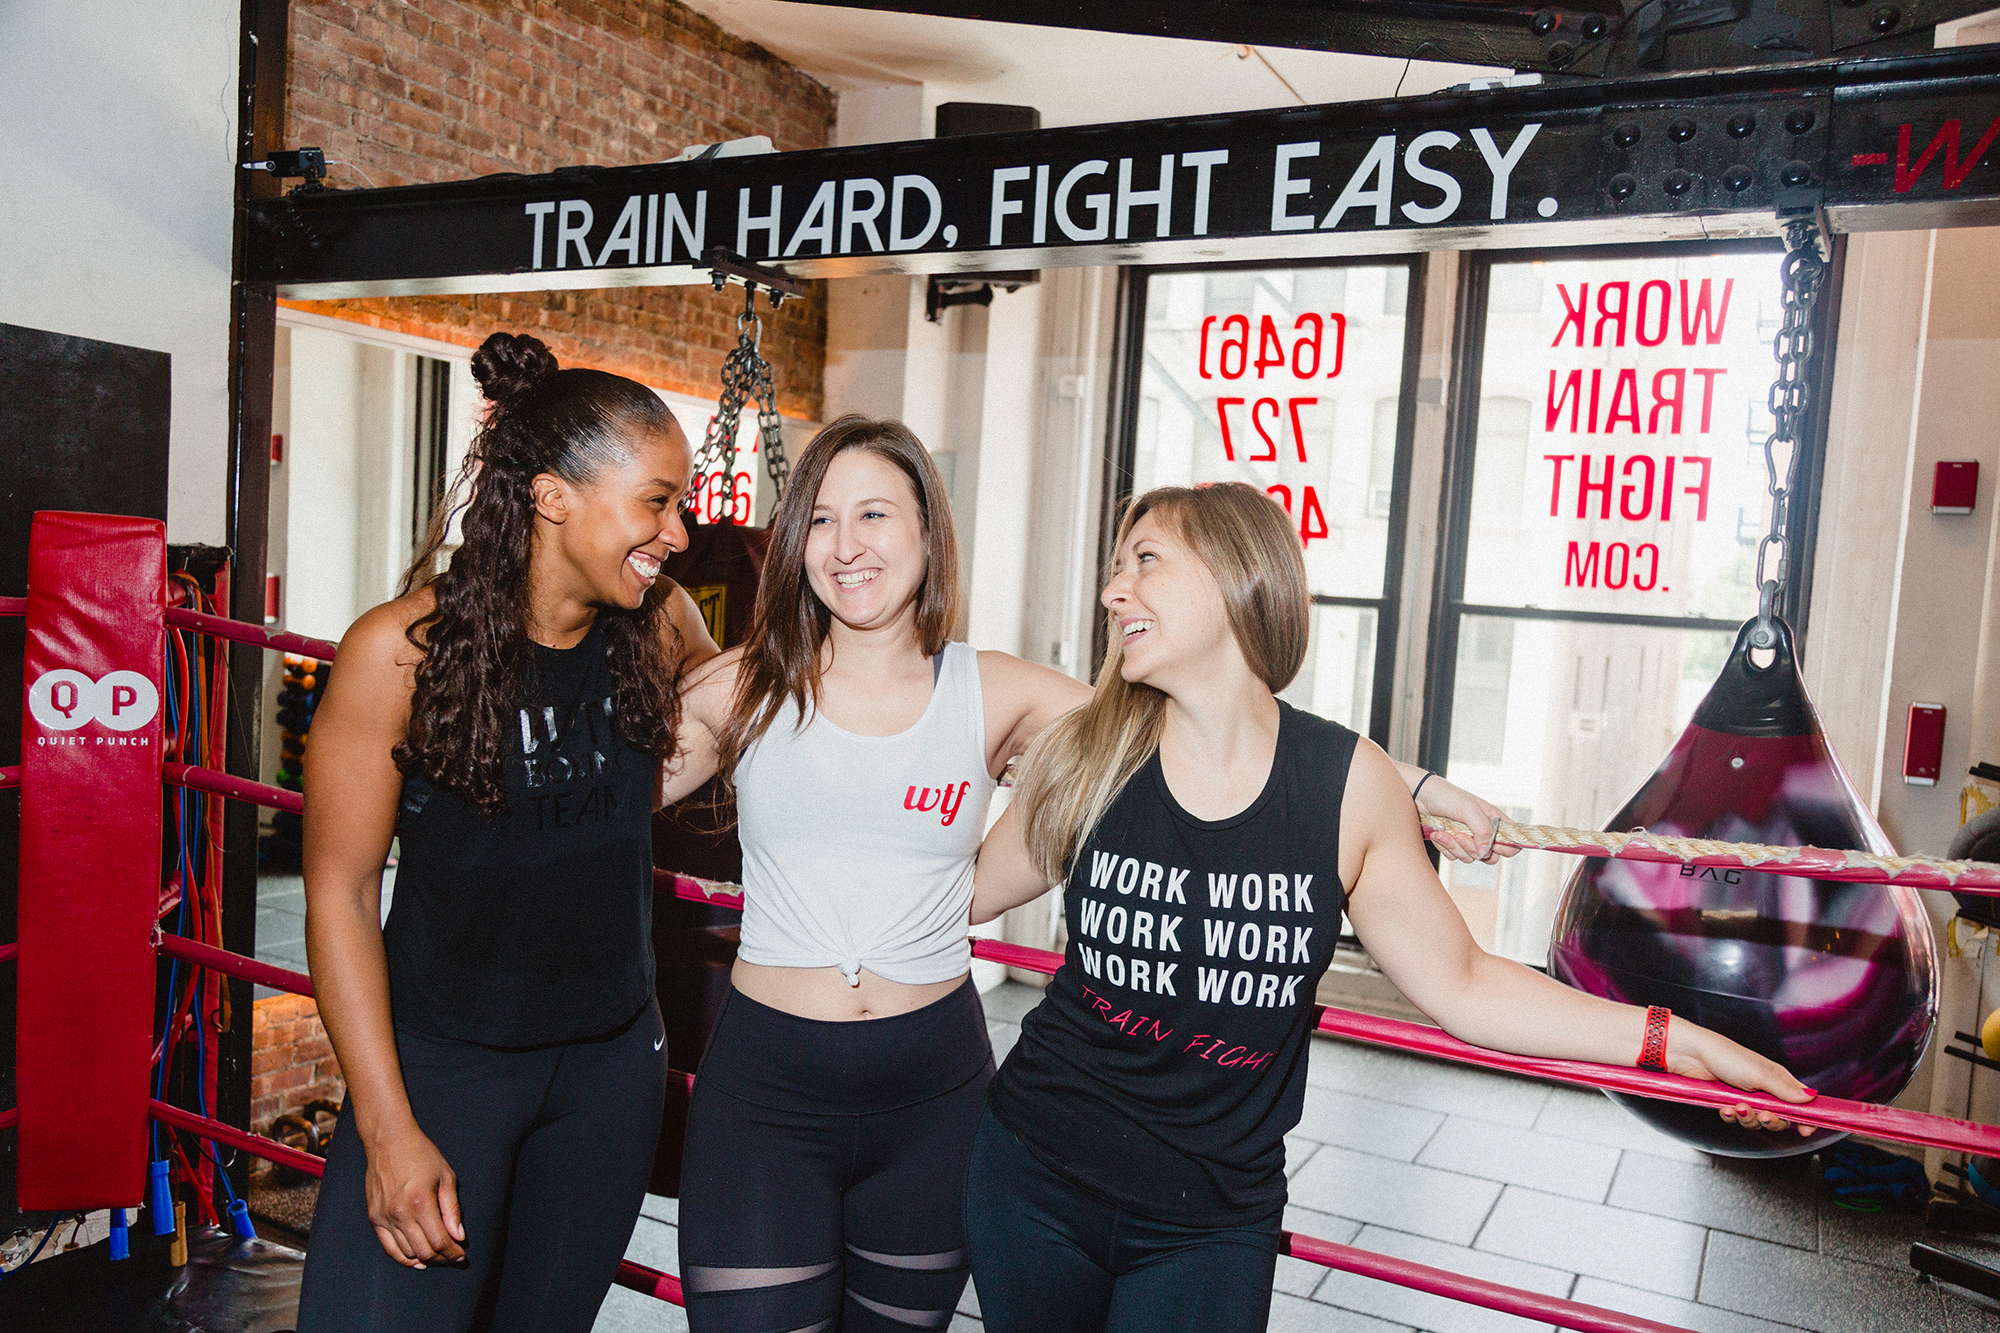 Nikki Campbell, Kate Hyman and Amber Trejo, founding women of Work Train Fight